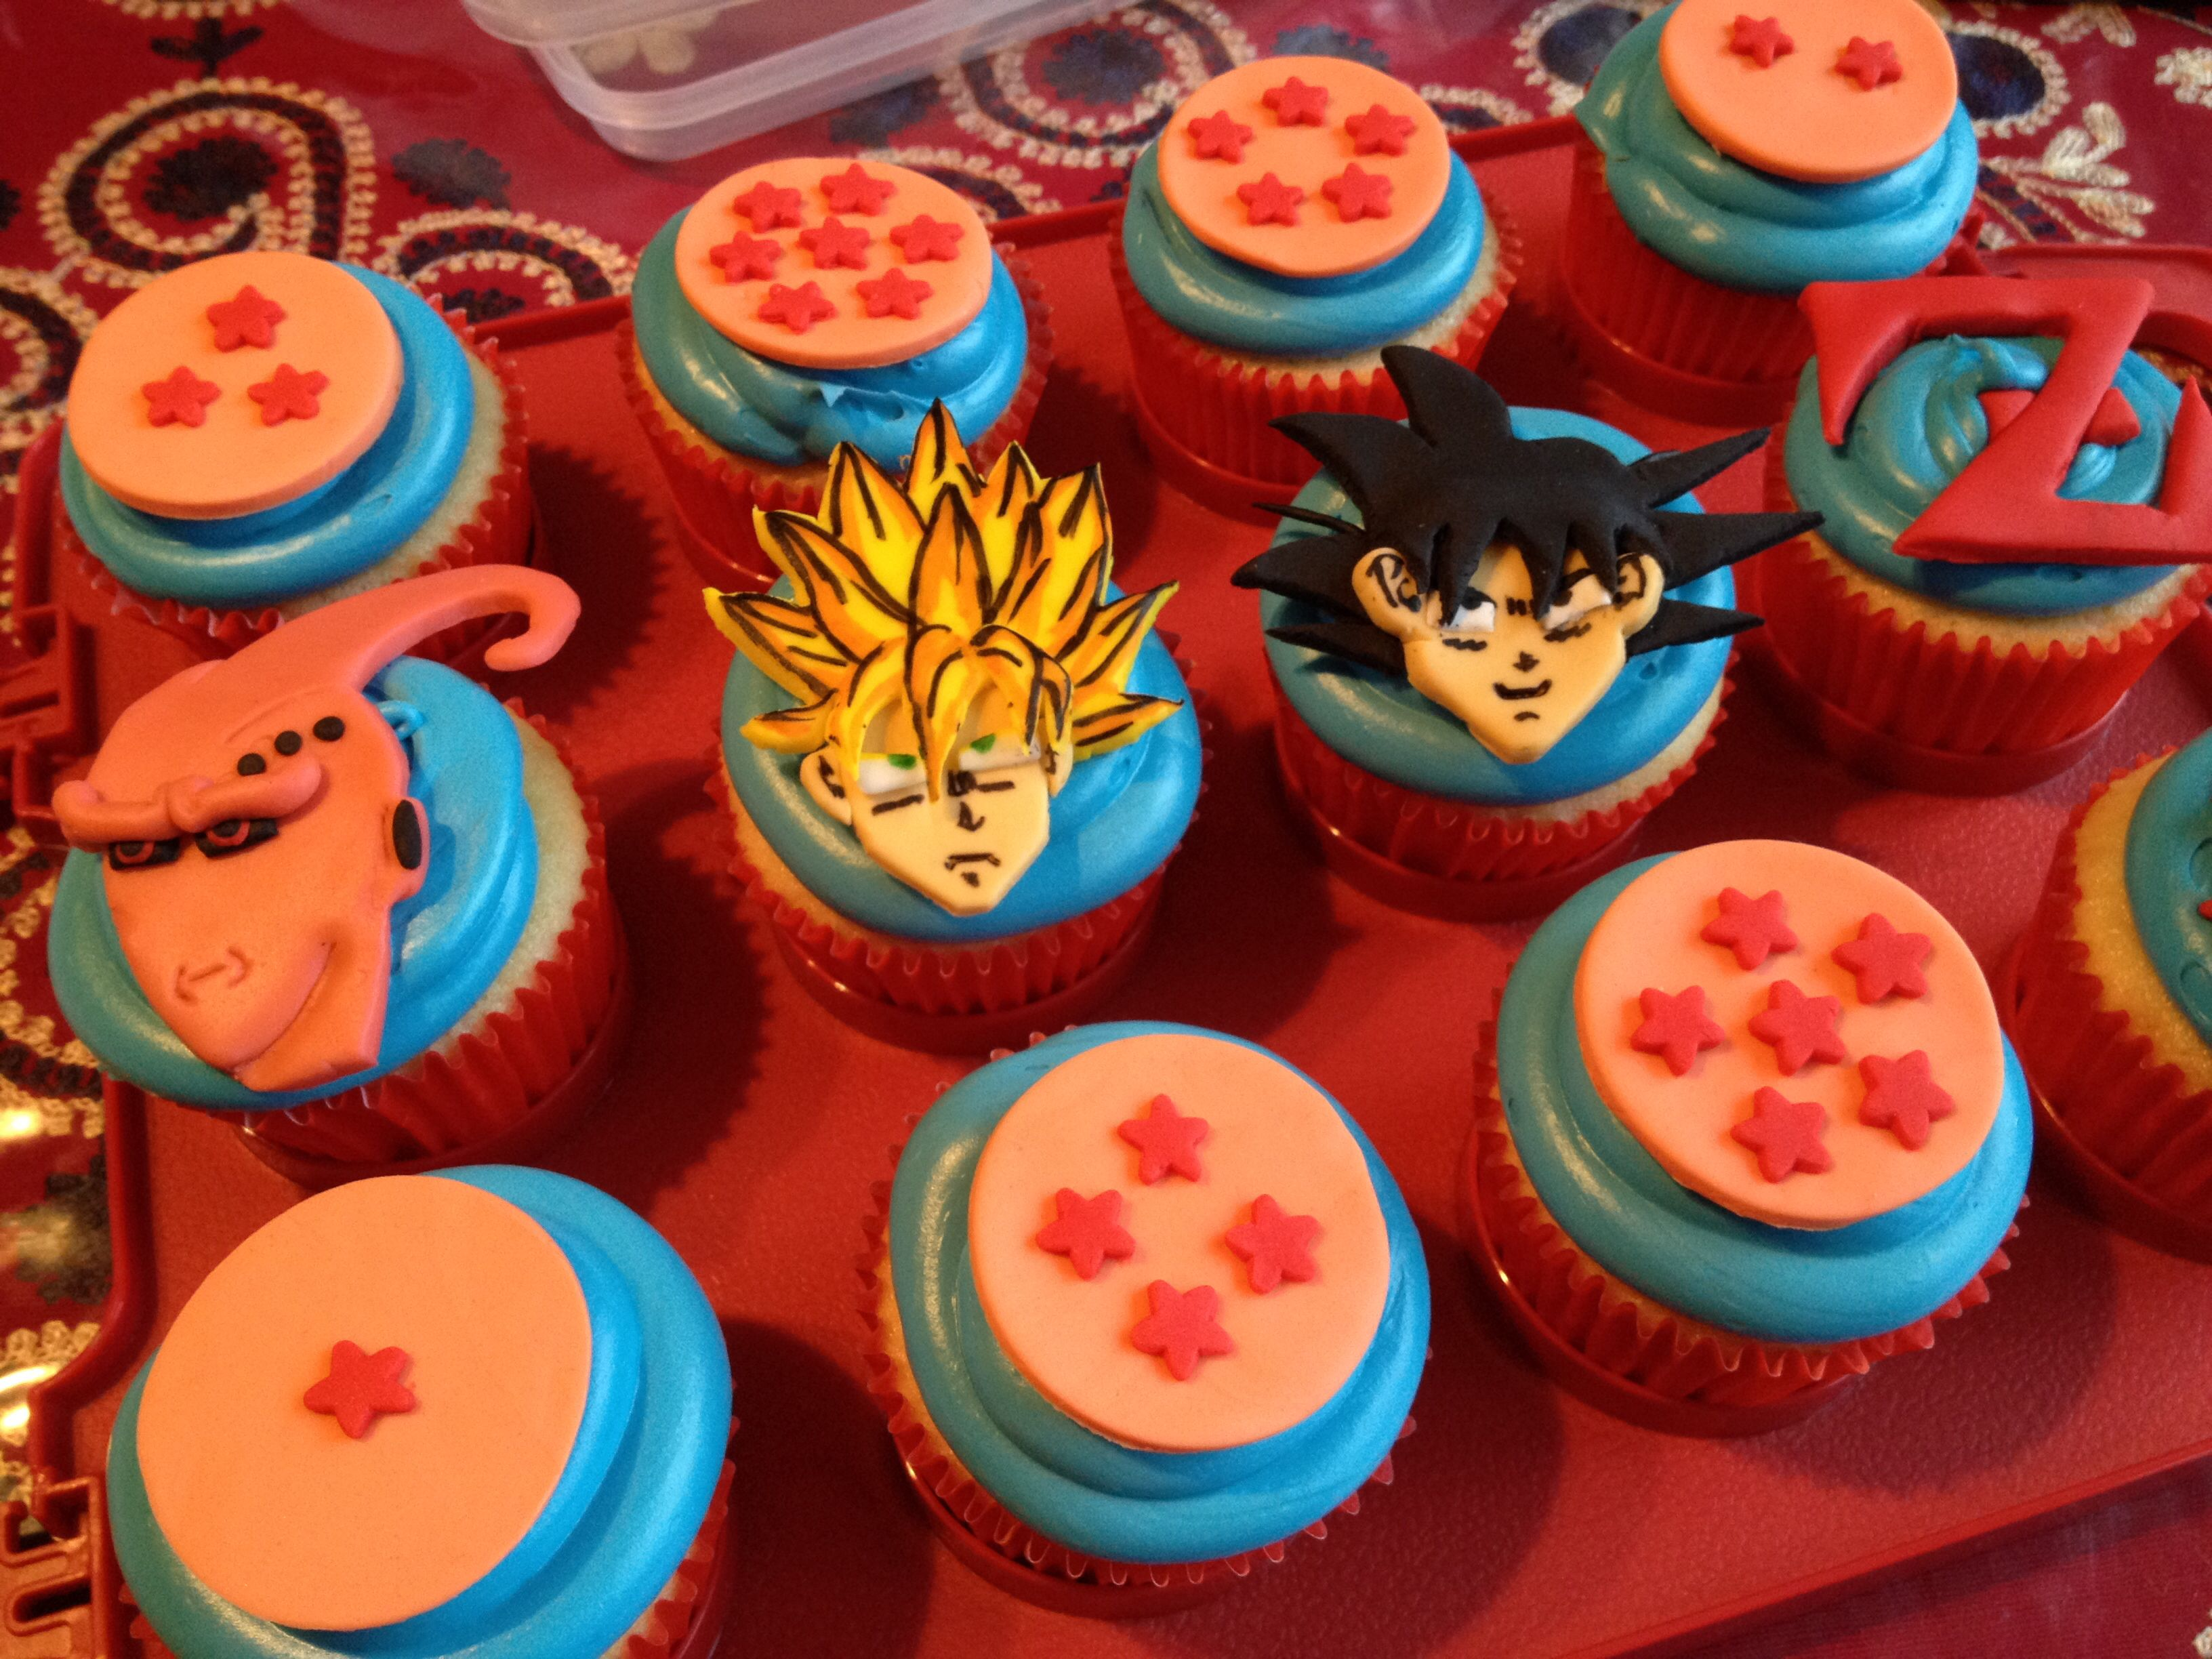 Cupcakes for boyfriend birthday yummy 4 tummy Pinterest Dragon